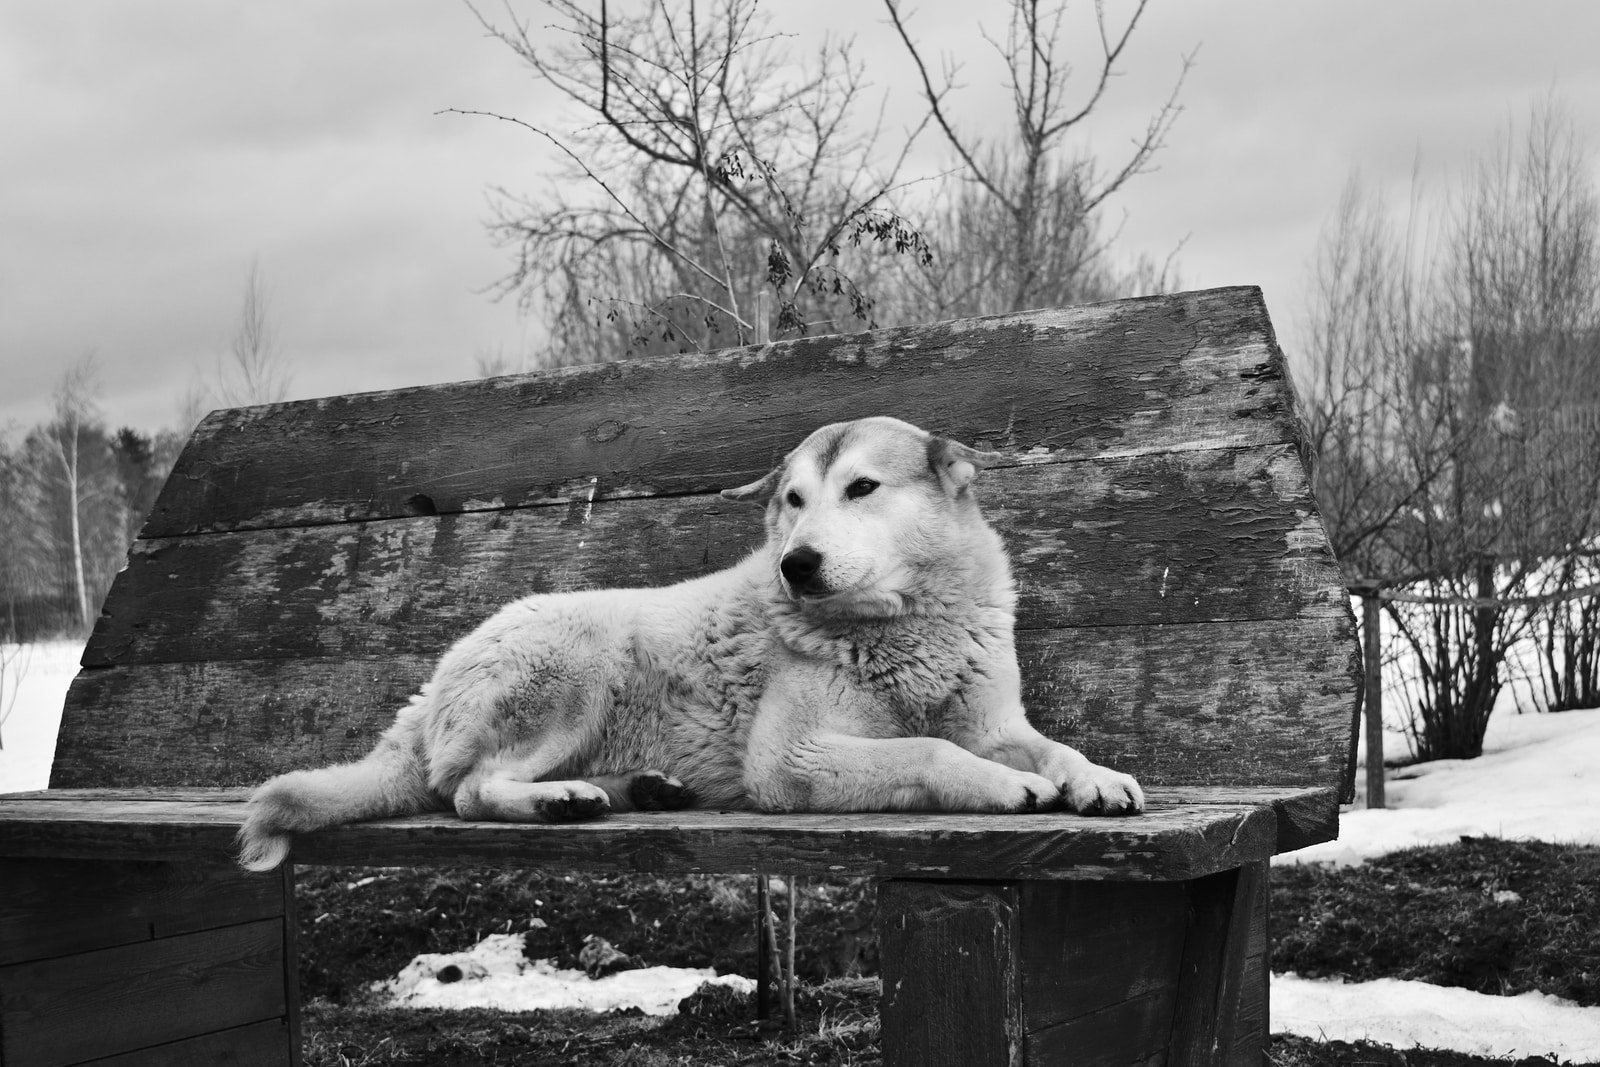 Husky laying on rustic wooden park bench. Snow on ground. Bare trees. Desolate. Black and White photo